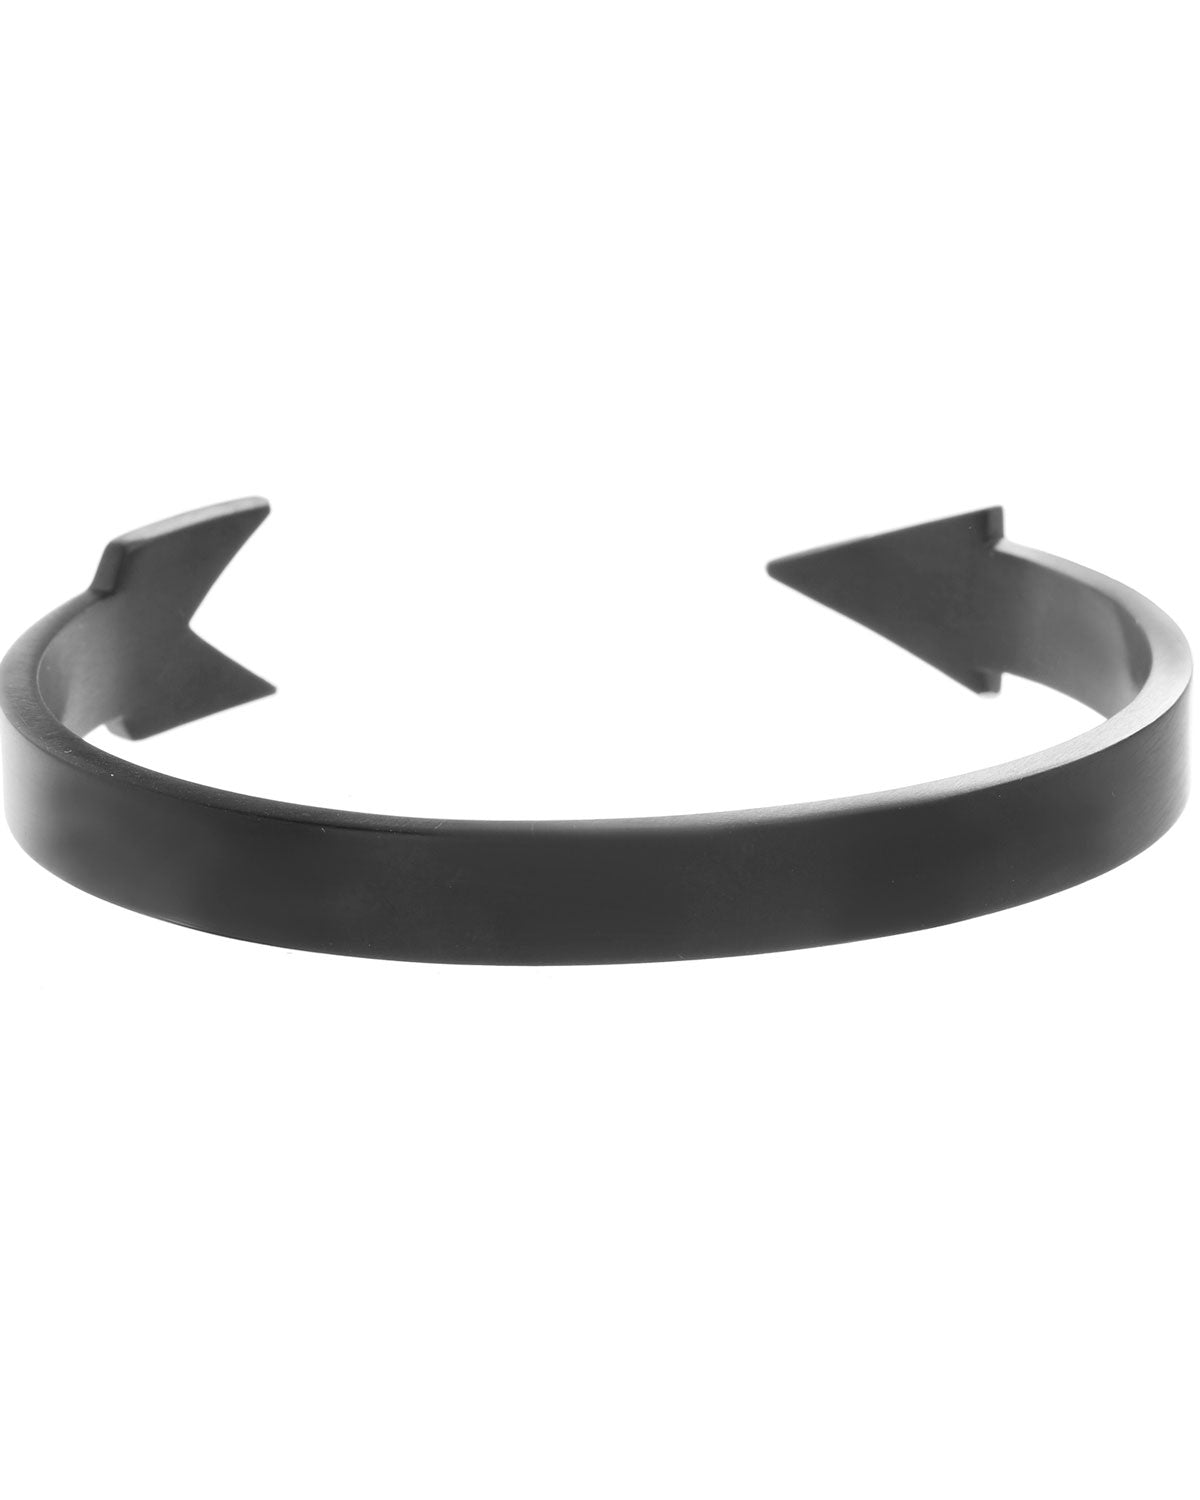 Arrow Design Cuff Bangle